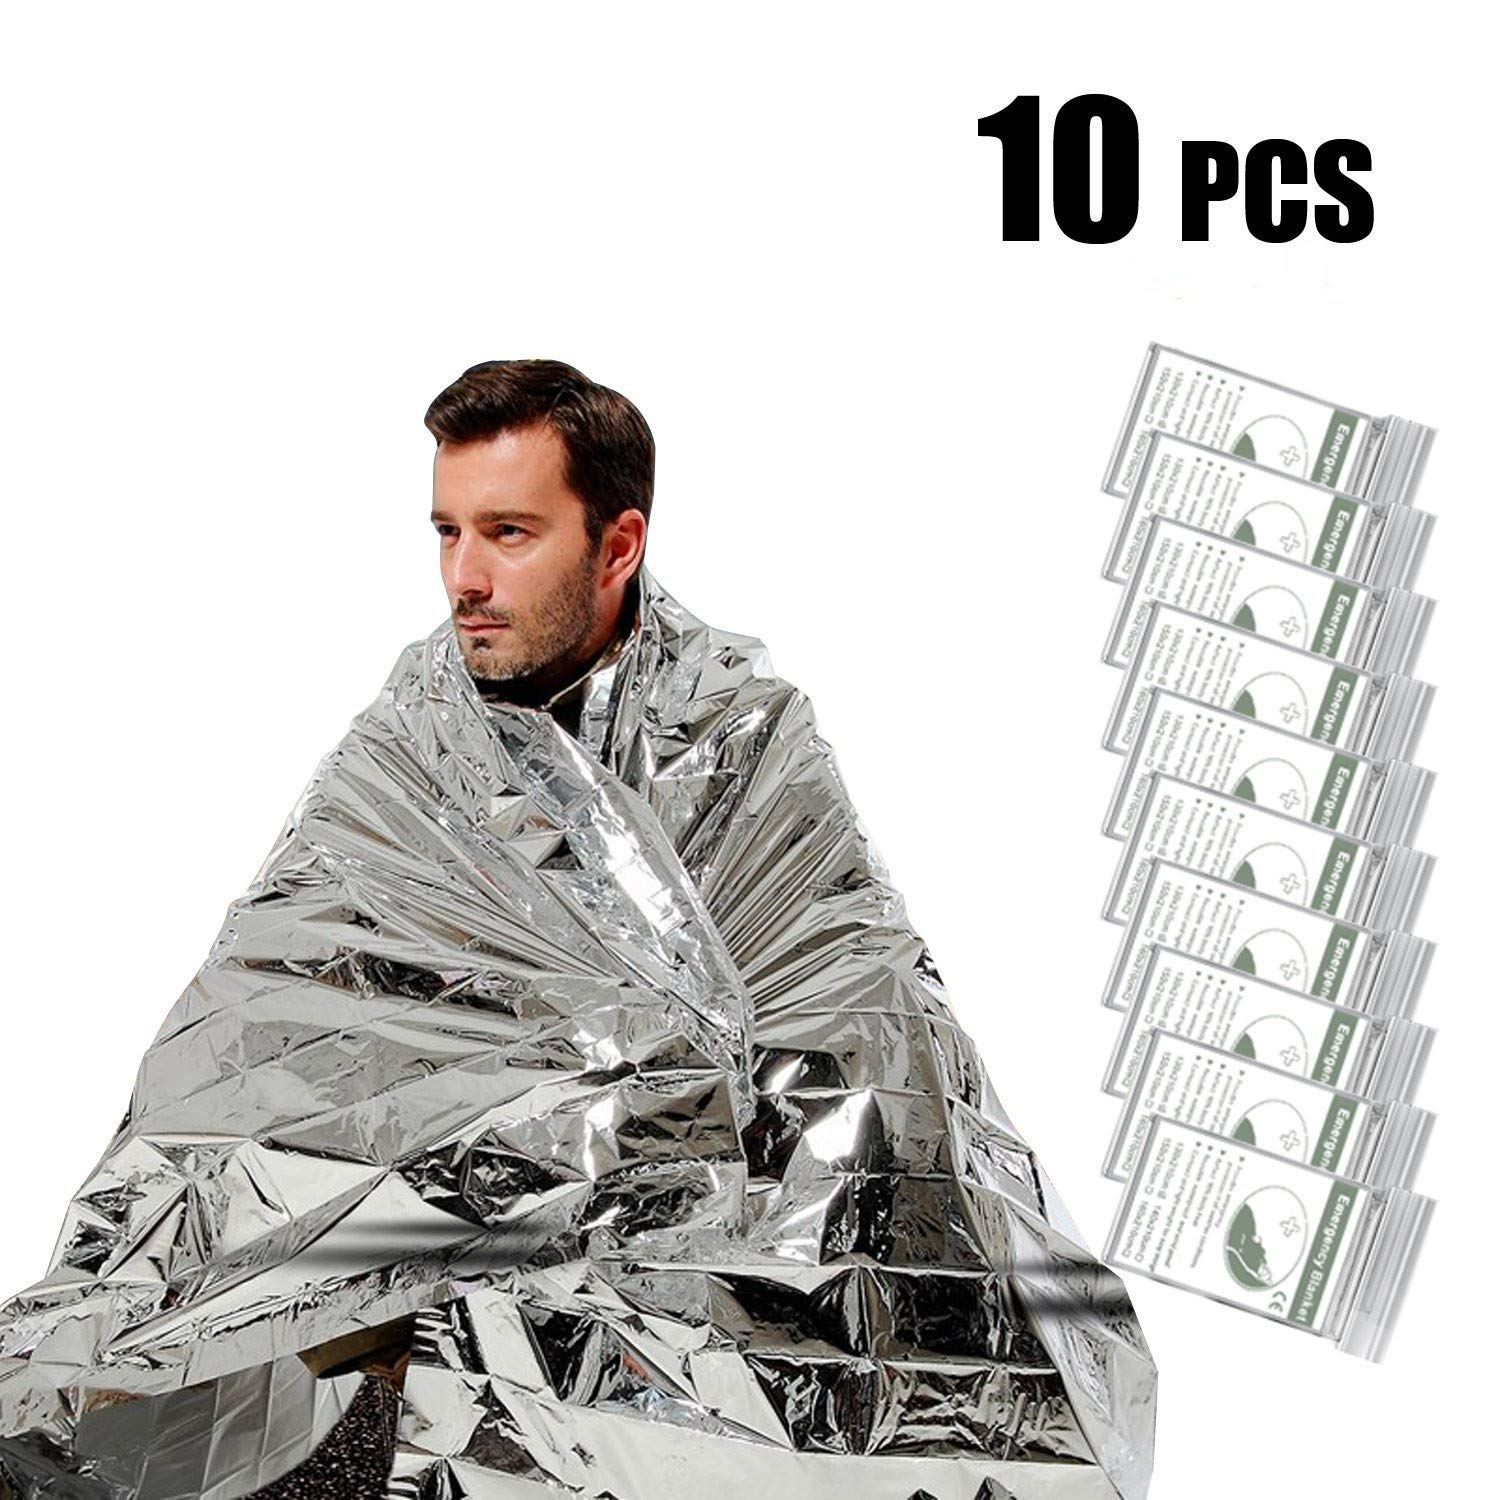 UBEGOOD Emergency Blanket,10 Pack Silver Space Blanket, 52'' x 82'' Waterproof Mylar Thermal Foil Blanket for Outdoor, Survival, Camping, Hiking, Marathons, Homeless, First Aid